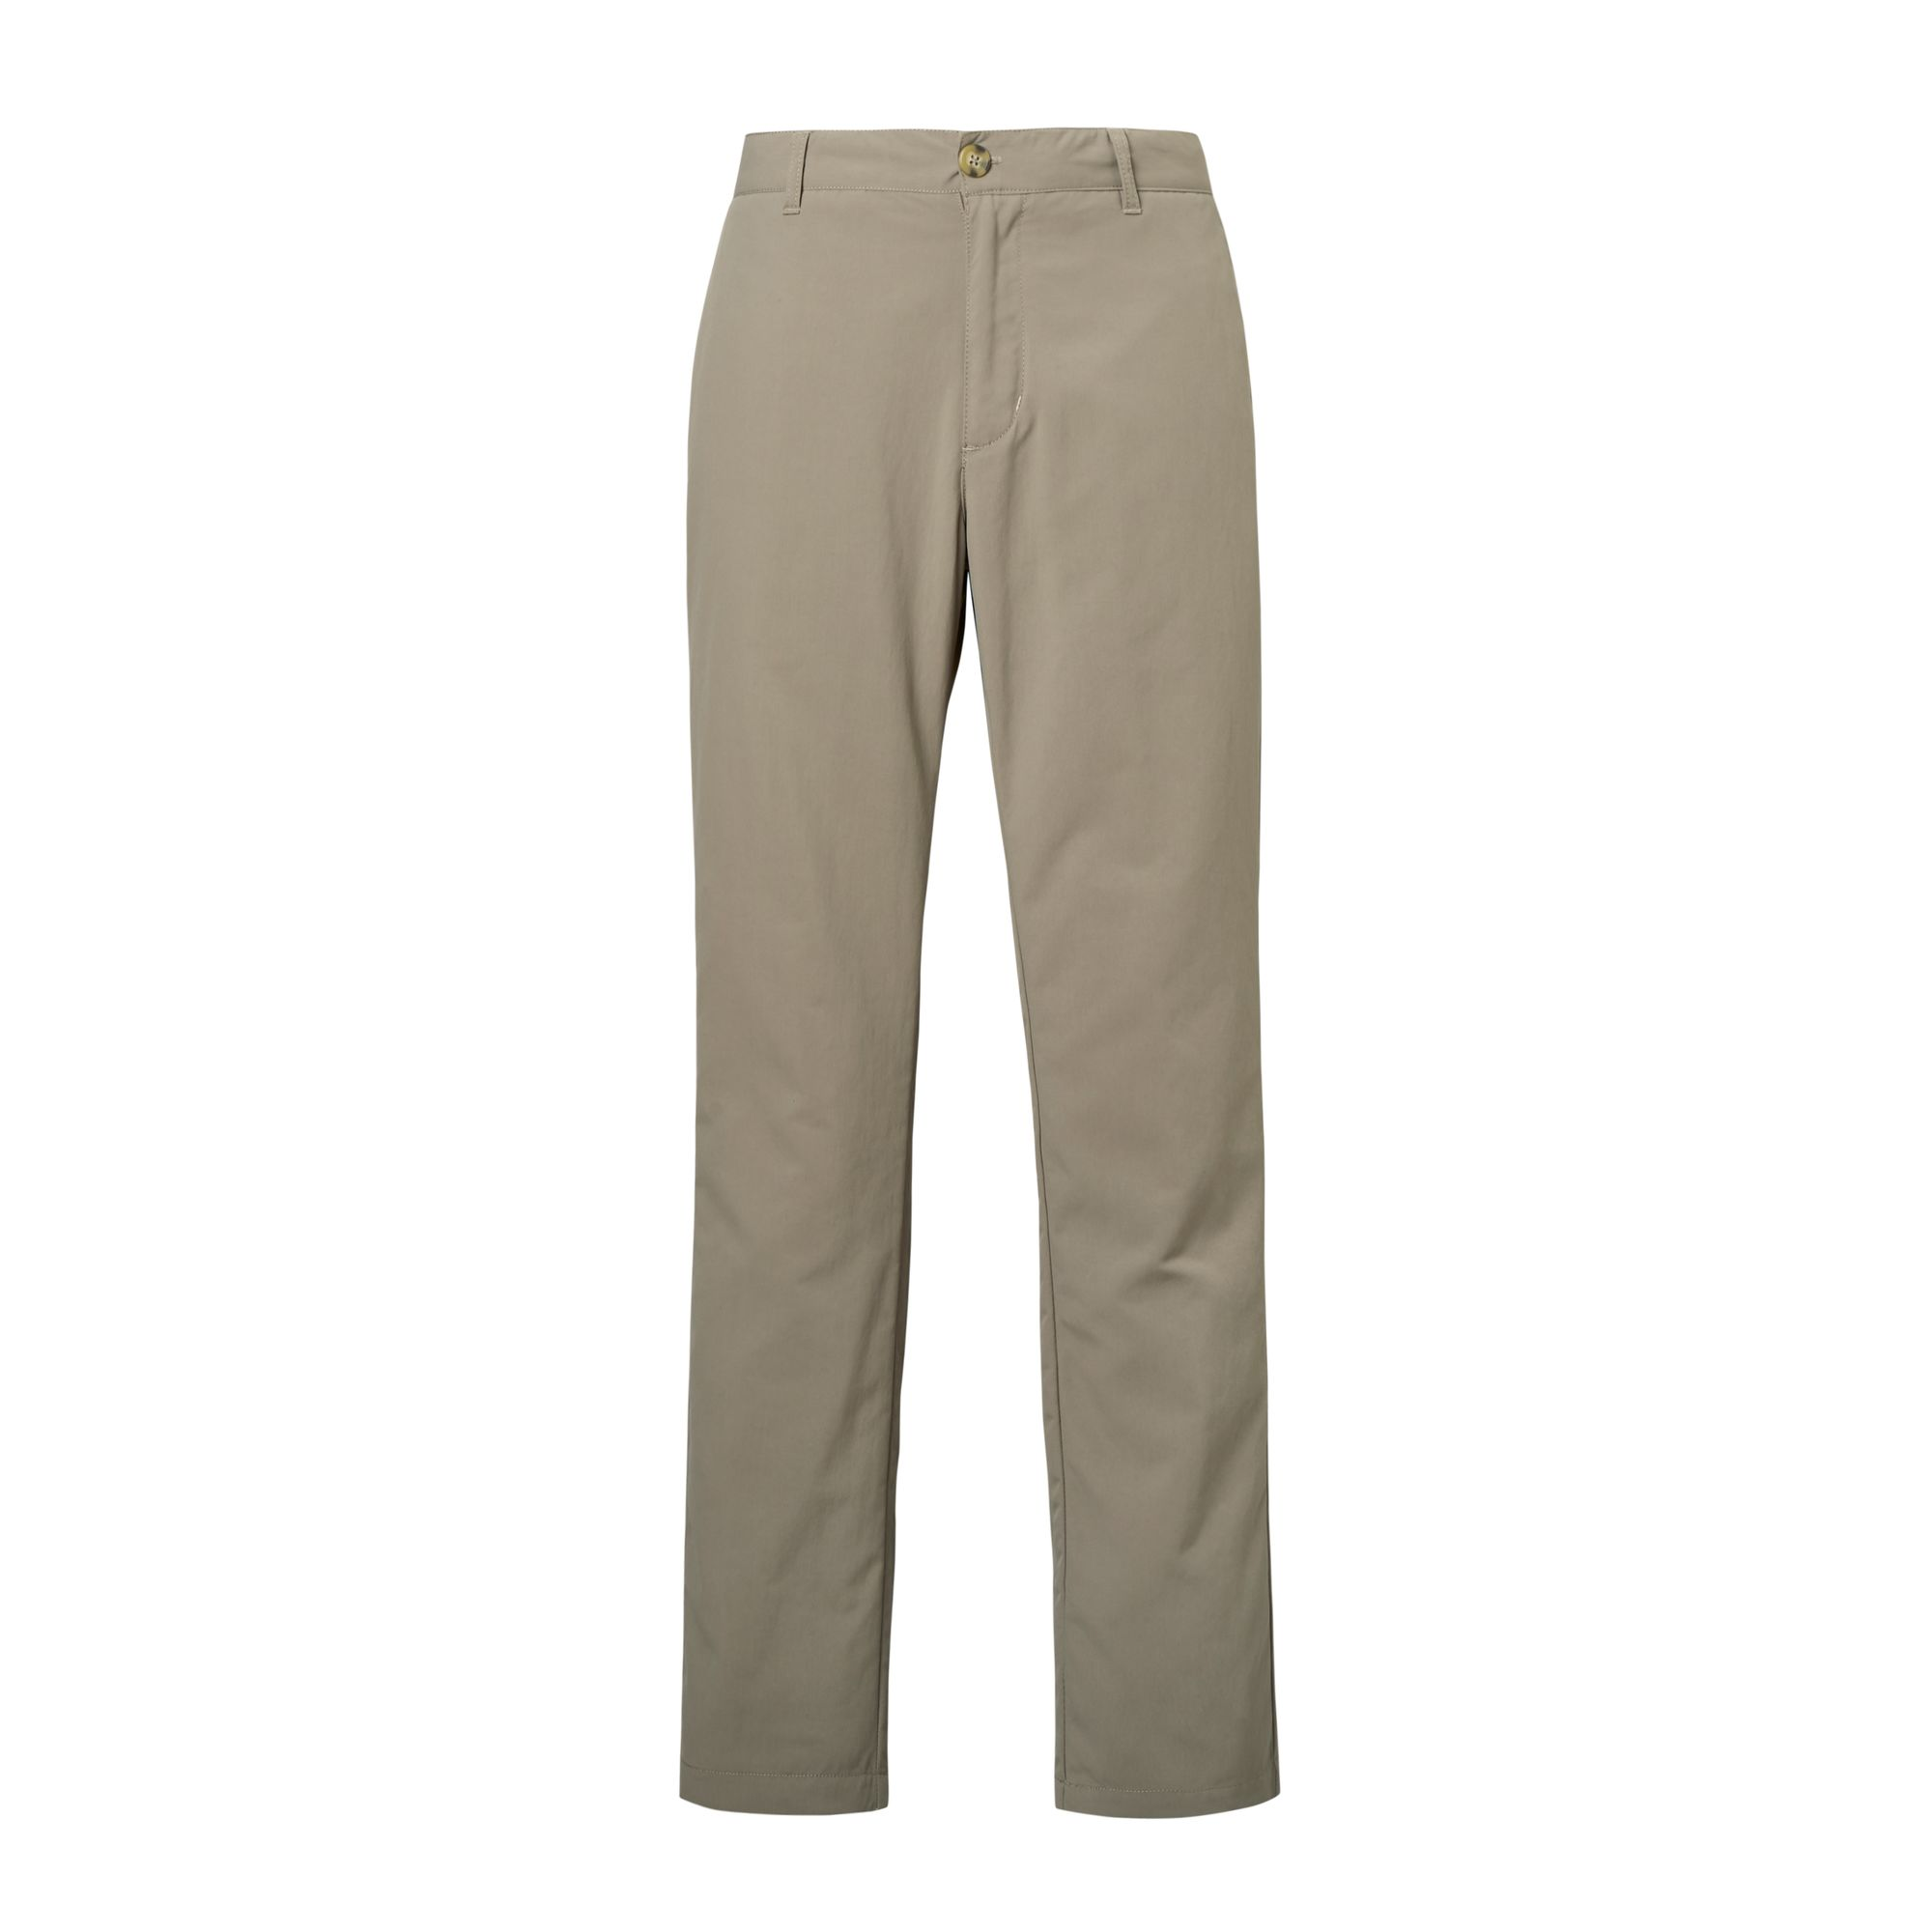 Craghoppers Mens NosiLife Albany Trousers CG842